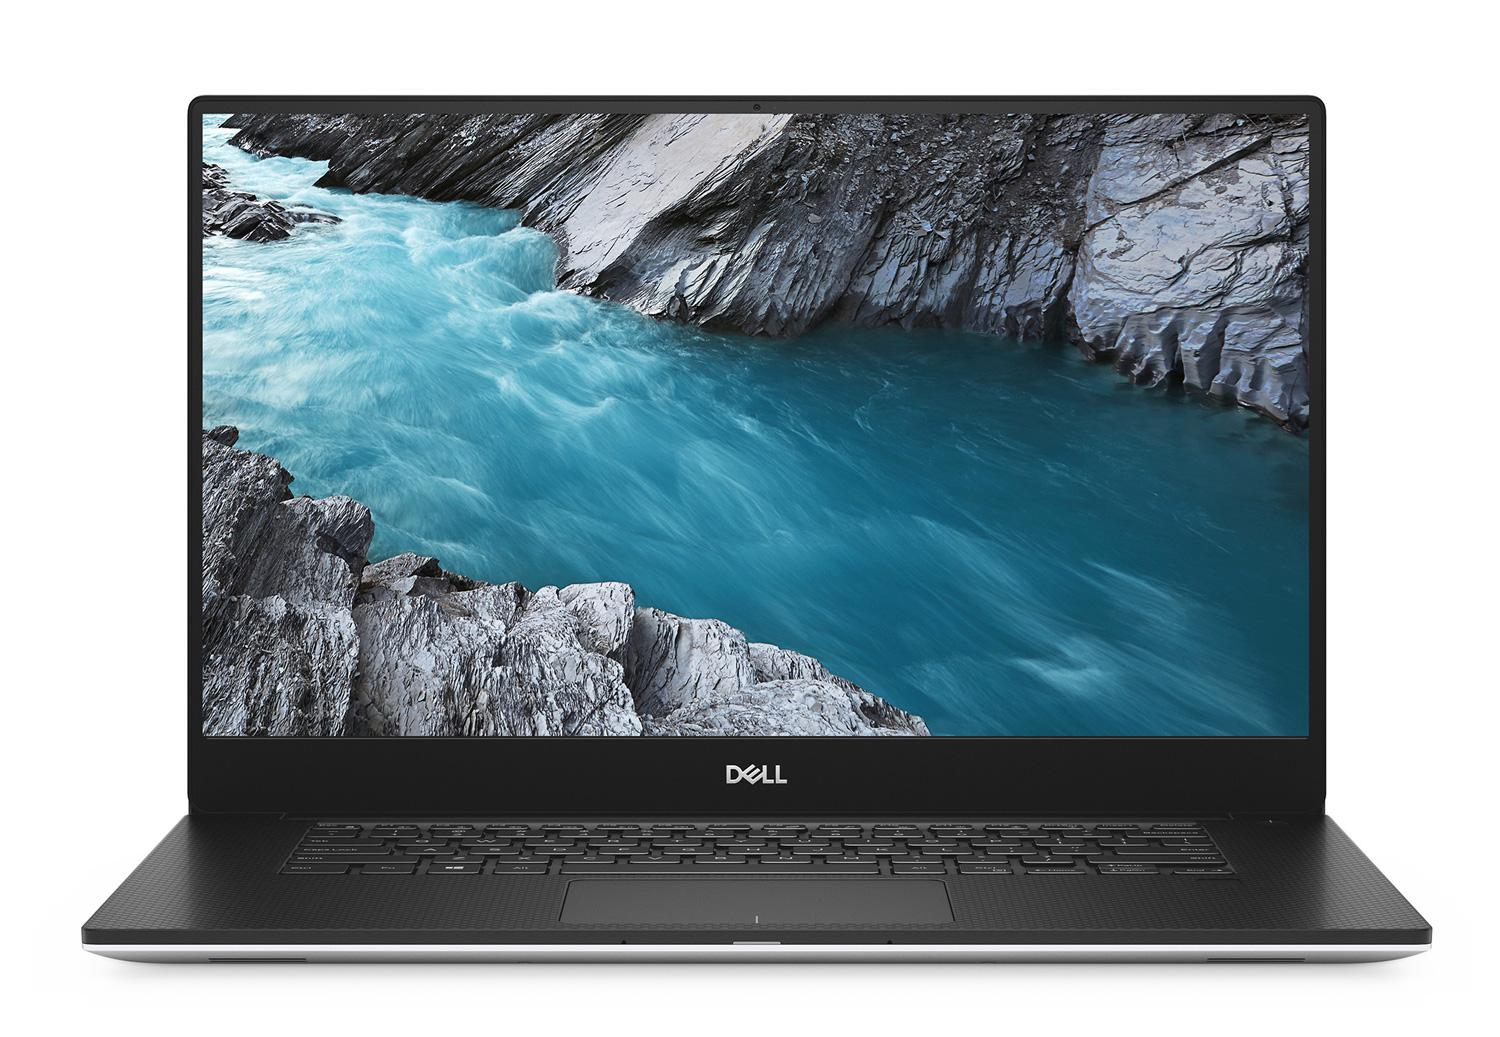 Ordinateur portable Dell XPS 15 7590 (1680) - OLED 4K, GTX 1650, SSD 1 To - photo 2